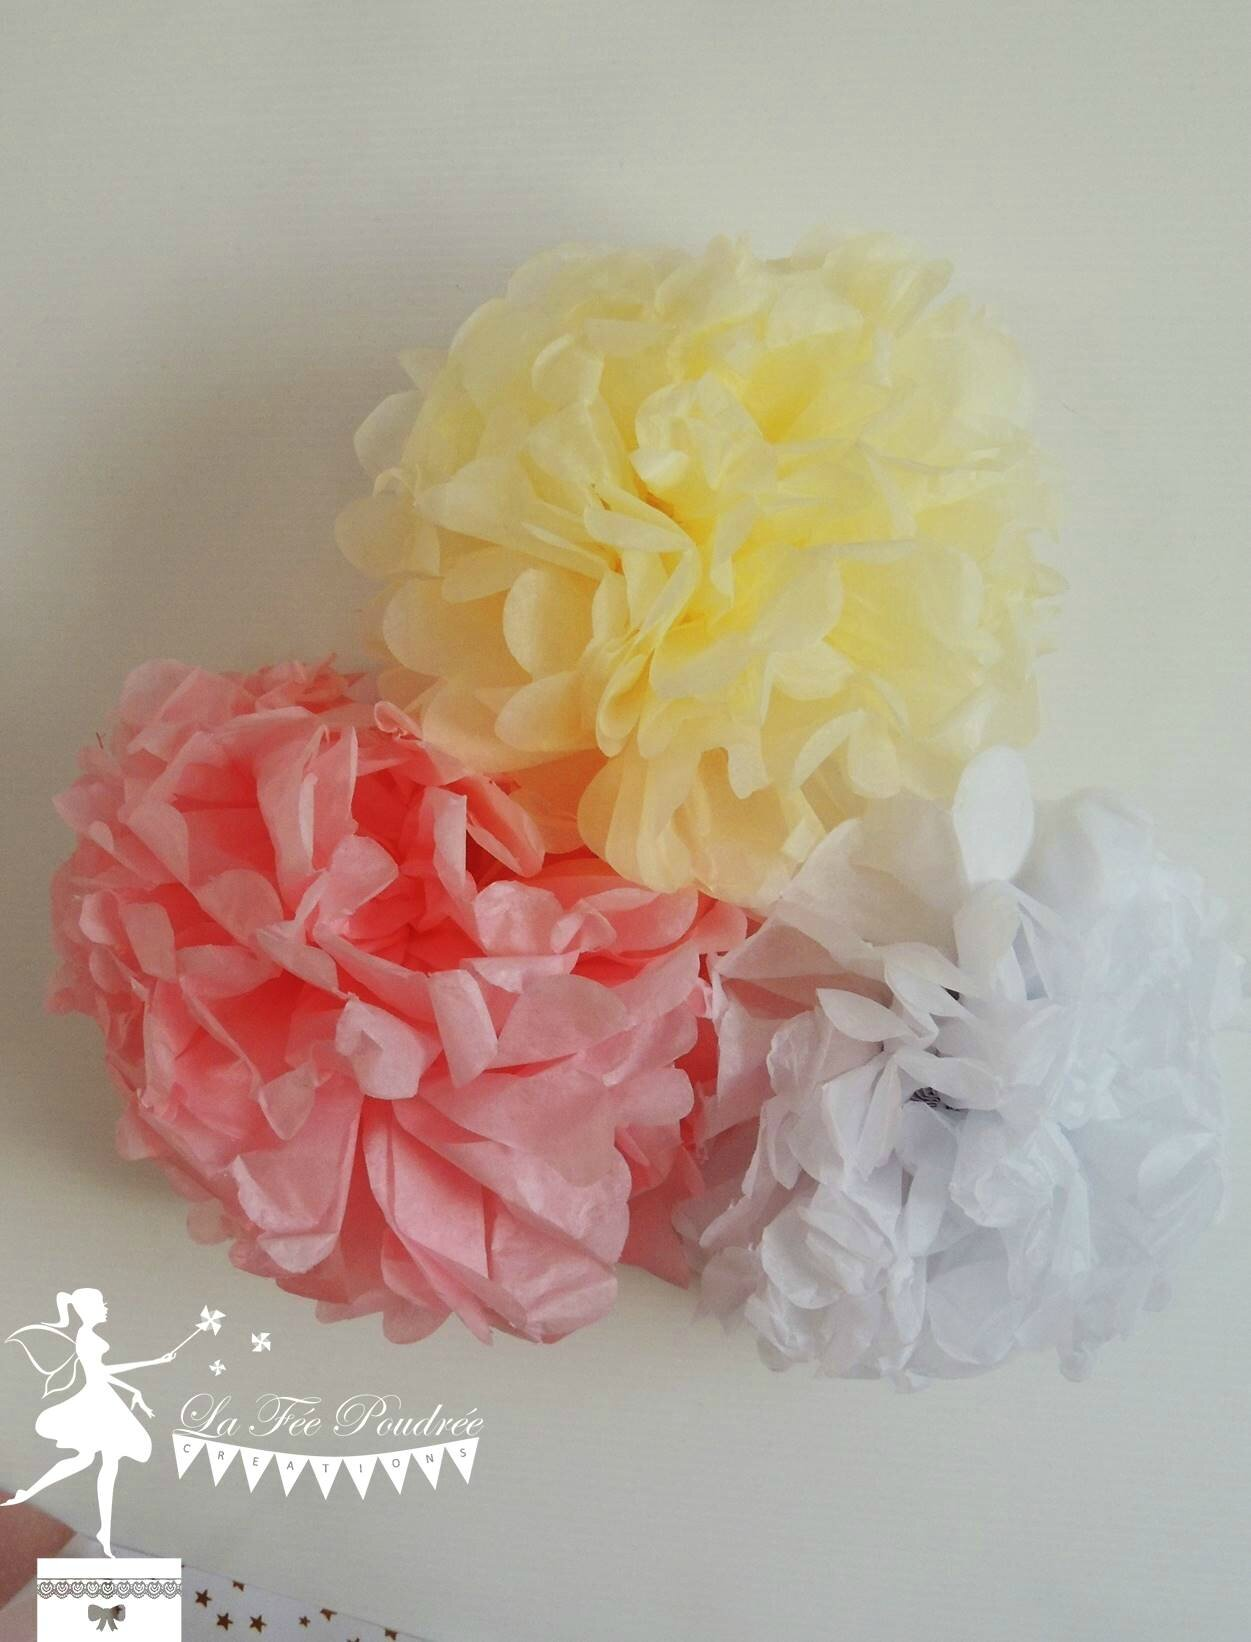 decoration mariage bapteme baby shower pompon ivoire rose blanc3